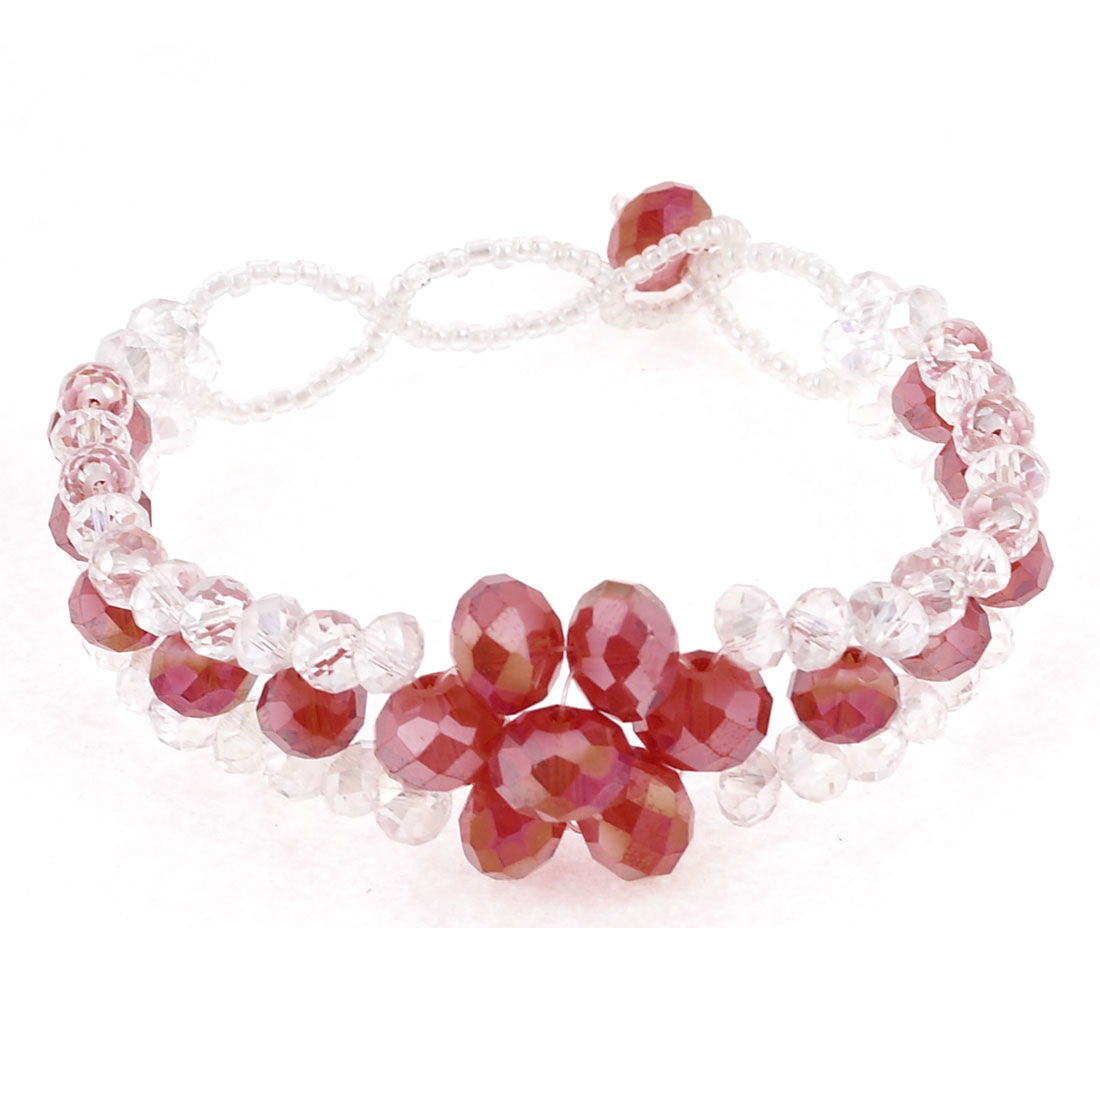 "0.6"" Width Party Red Clear Crystal 3 Layer Bracelet for Lady Girl"